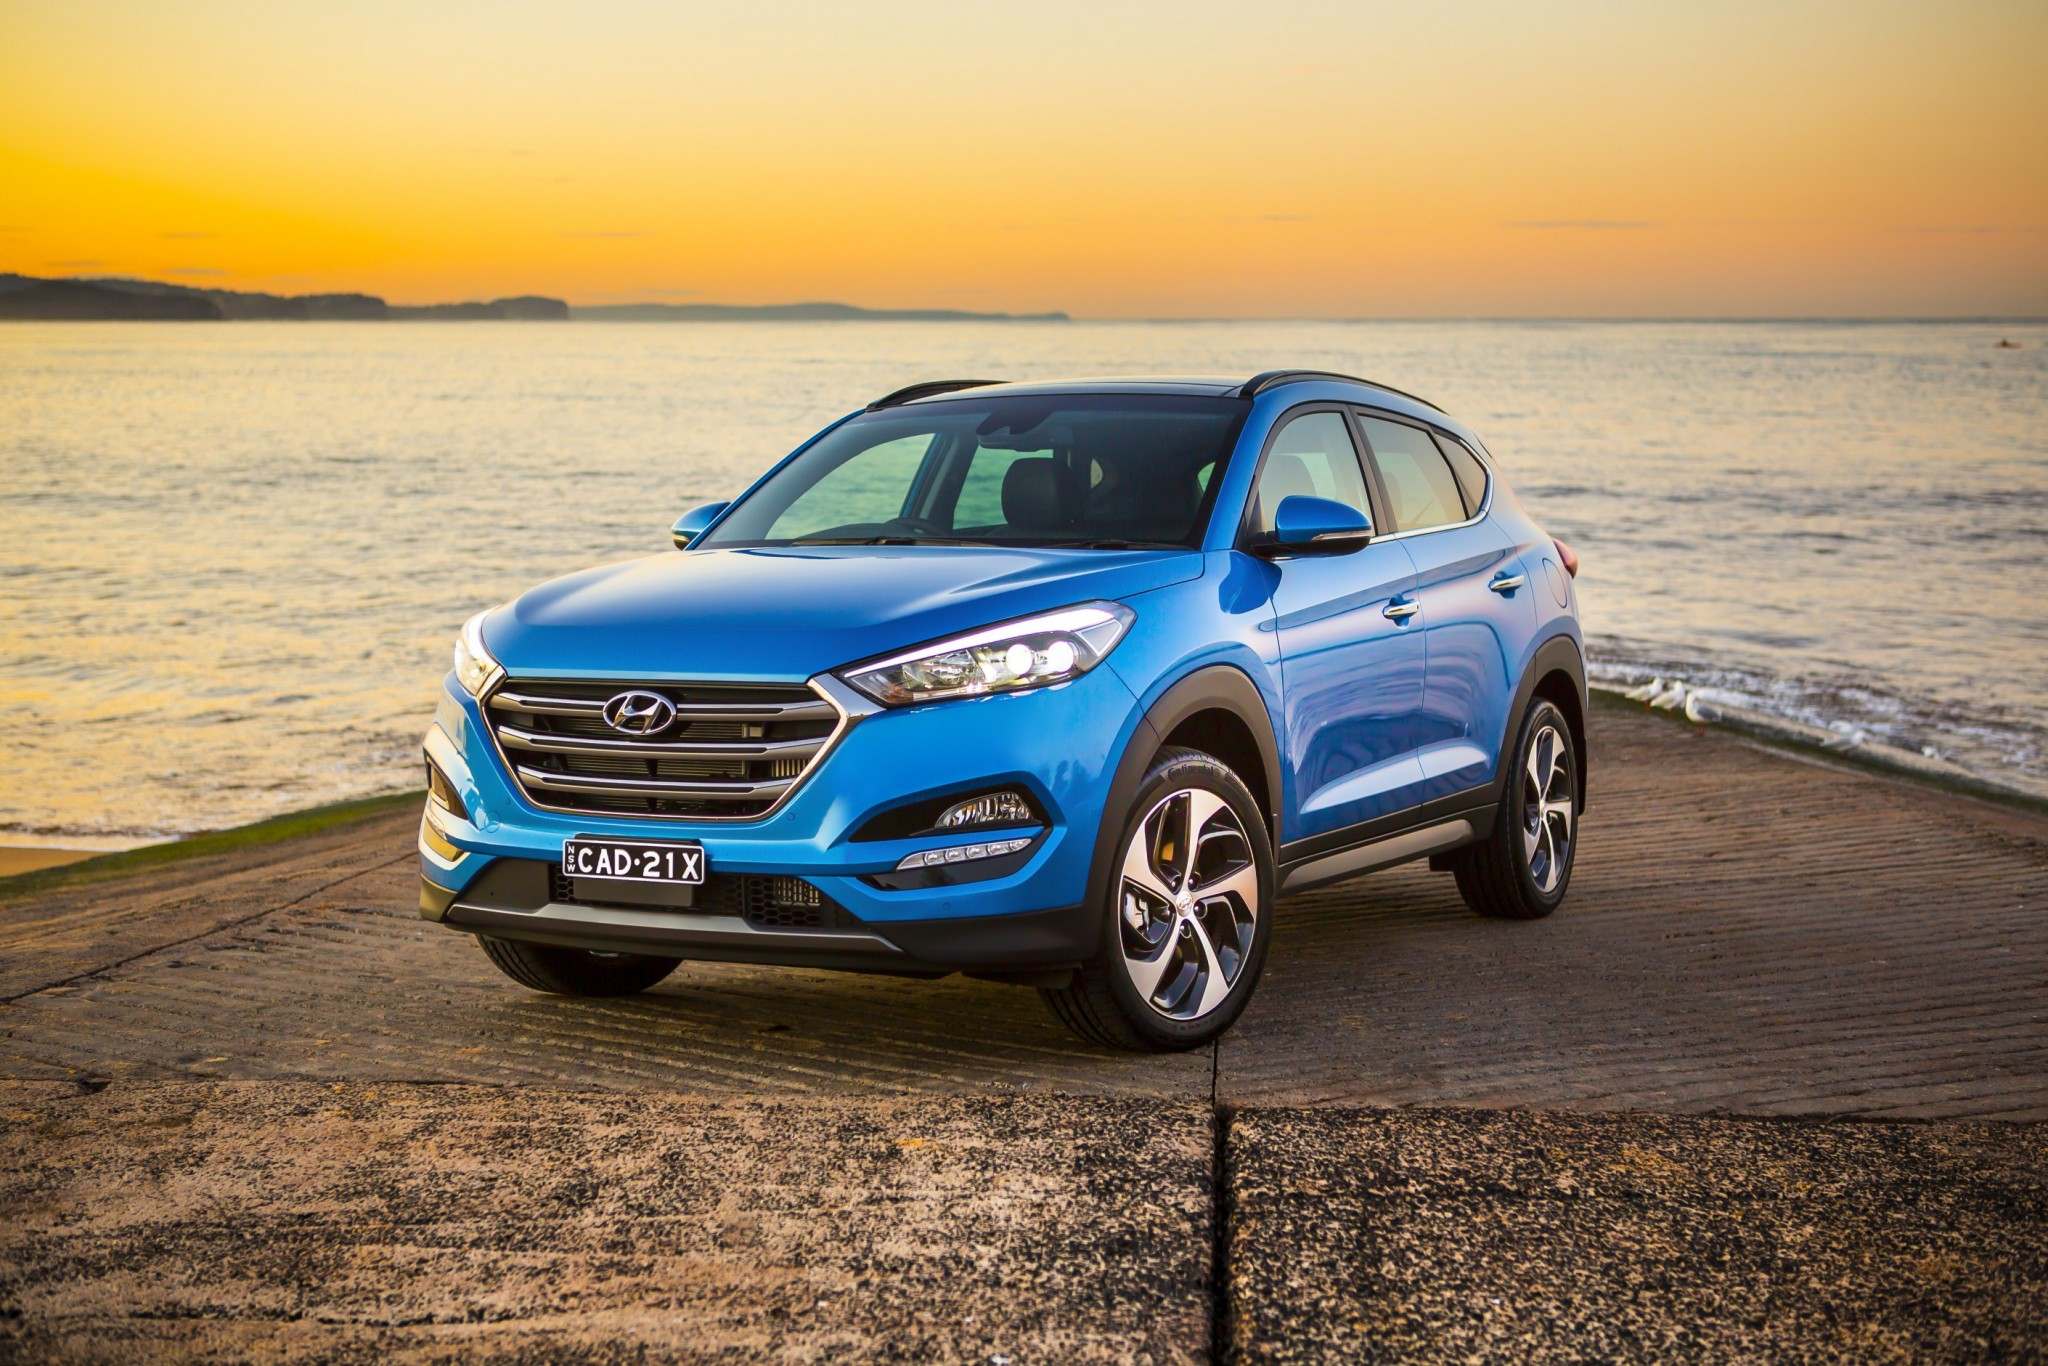 guide degree tucson spinners with is and loaded hyundai trendy photos colors pricing crossover in under